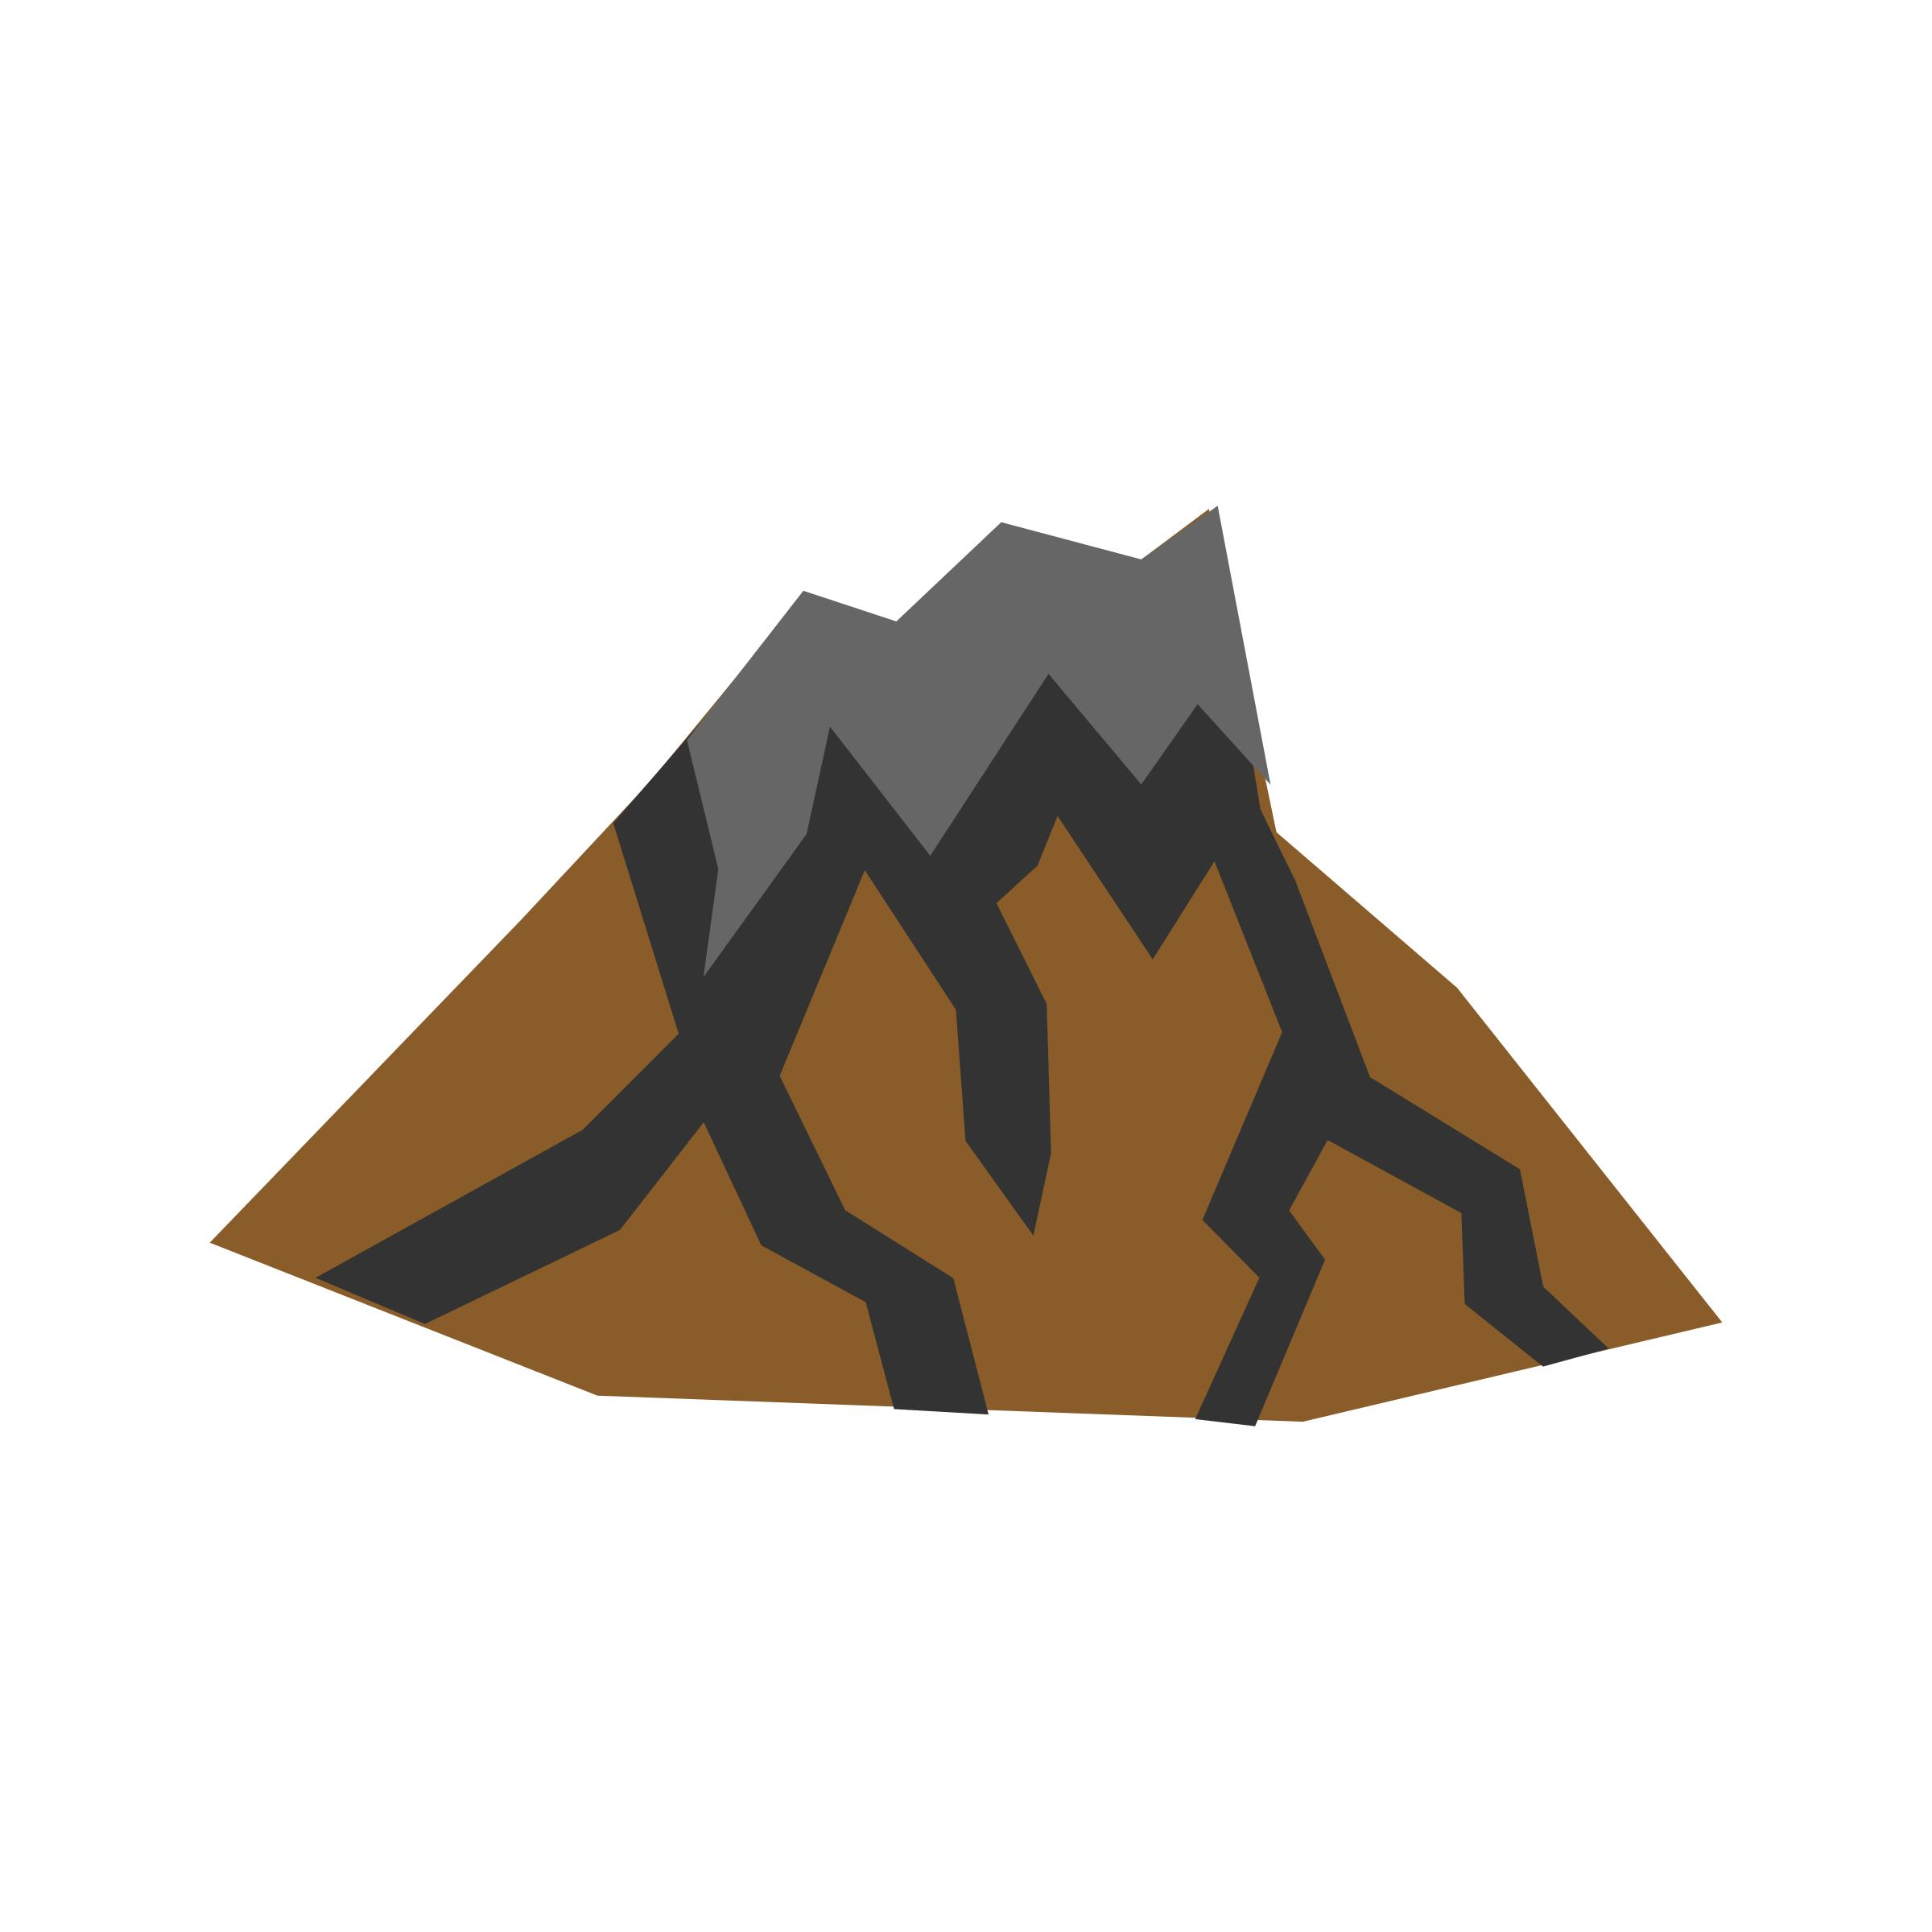 Volcano clipart active volcano. Dormant icons png free